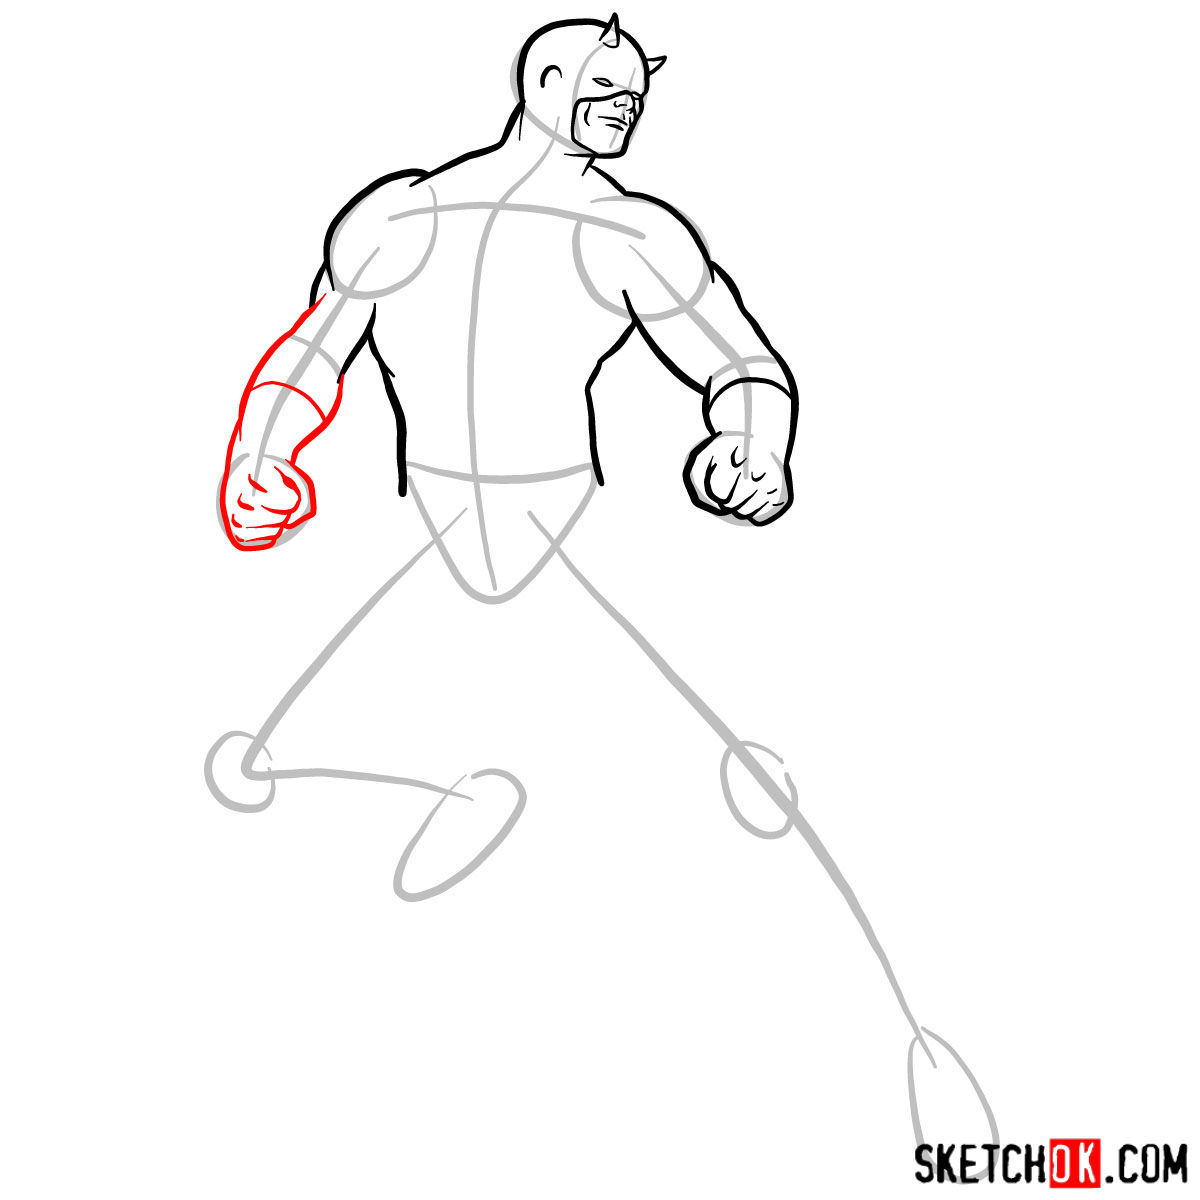 How to draw Daredevil from Marvel - step 07